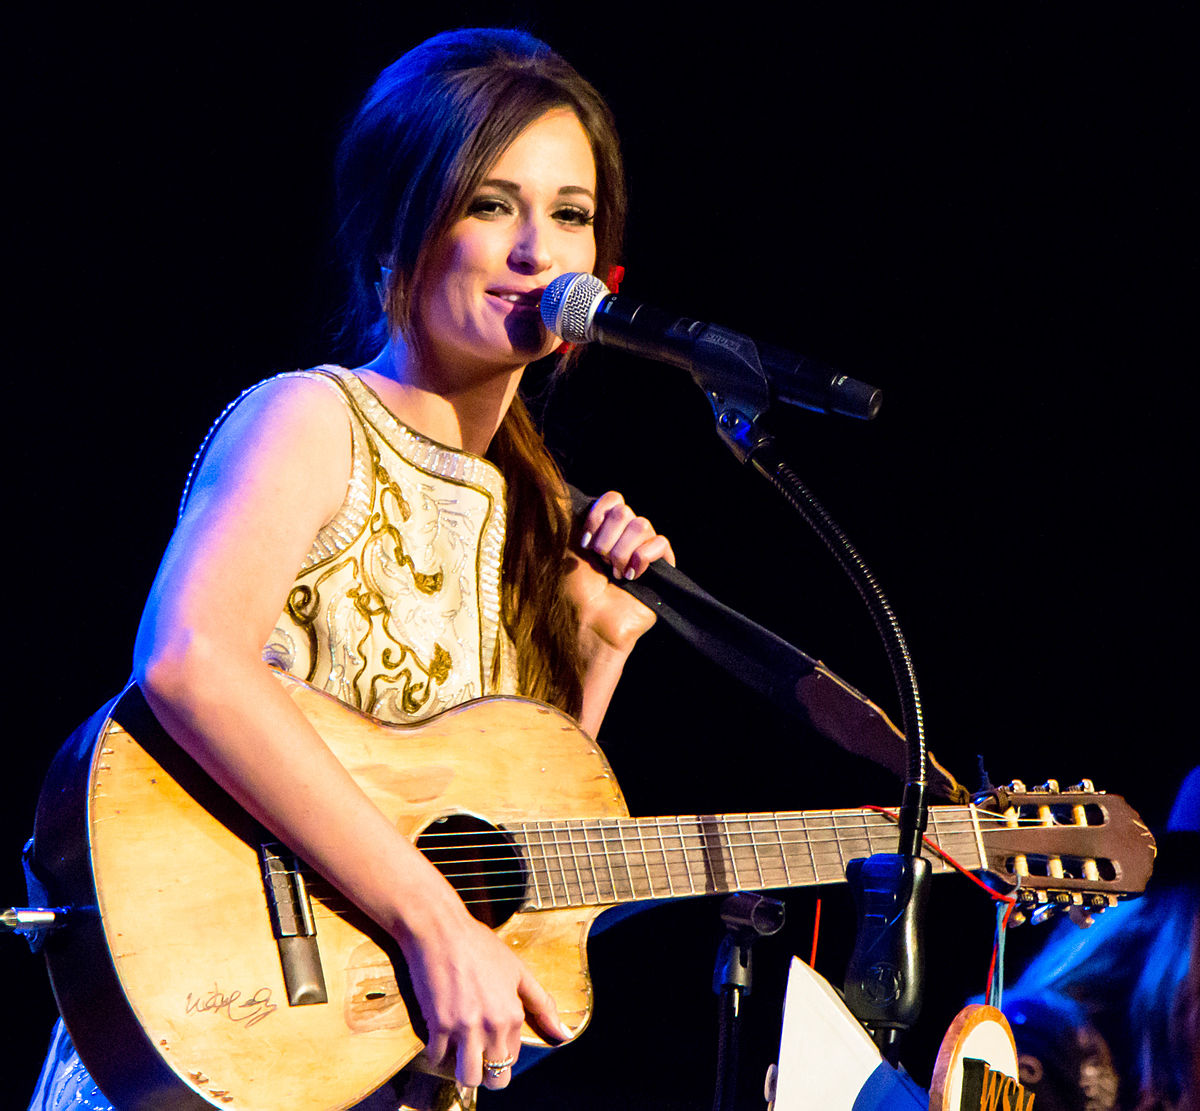 kacey musgraves - photo #32